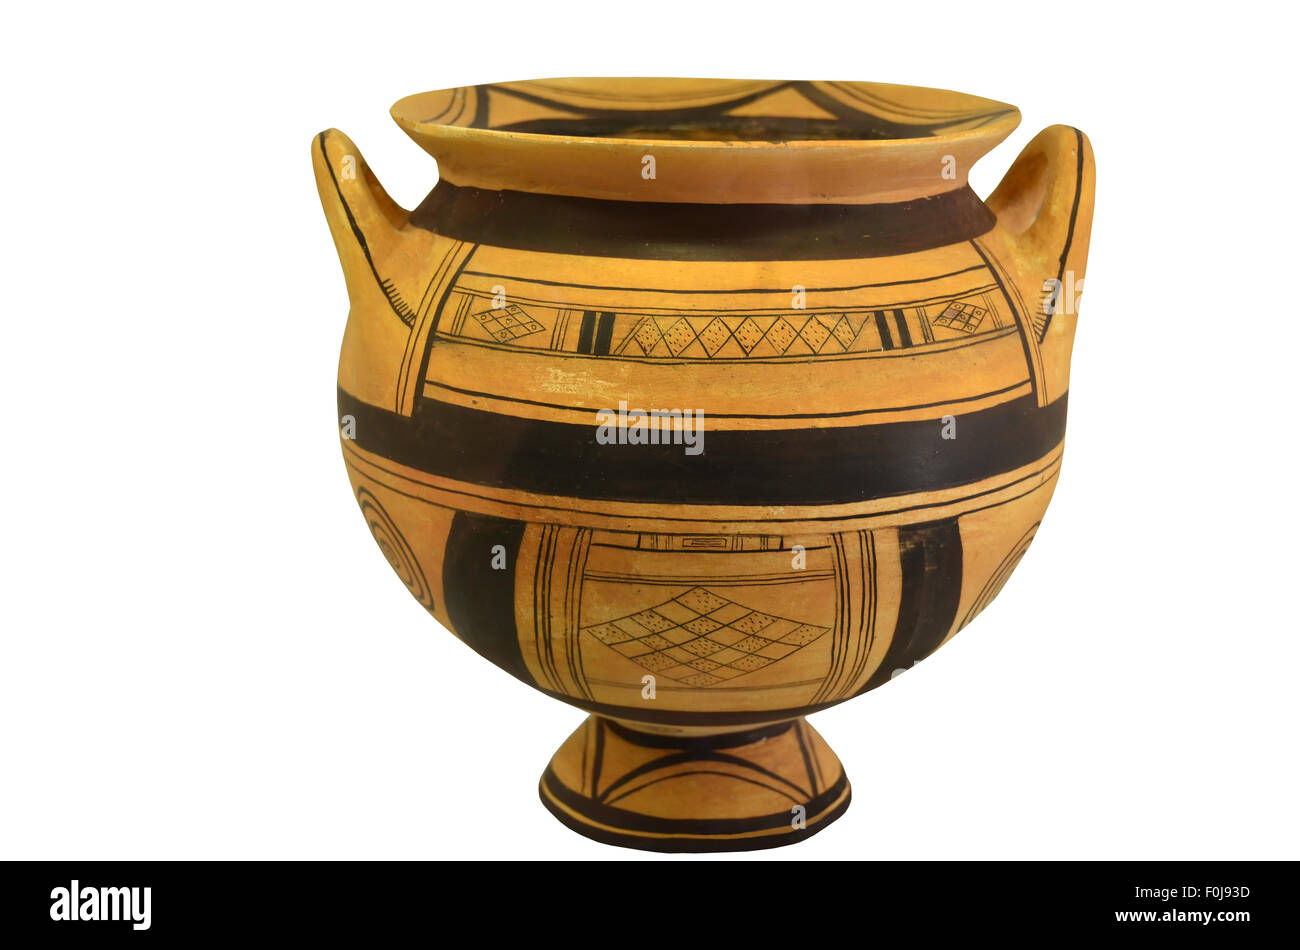 An ancient greek vase from the geometric period. Isolation against a white background - Stock Image